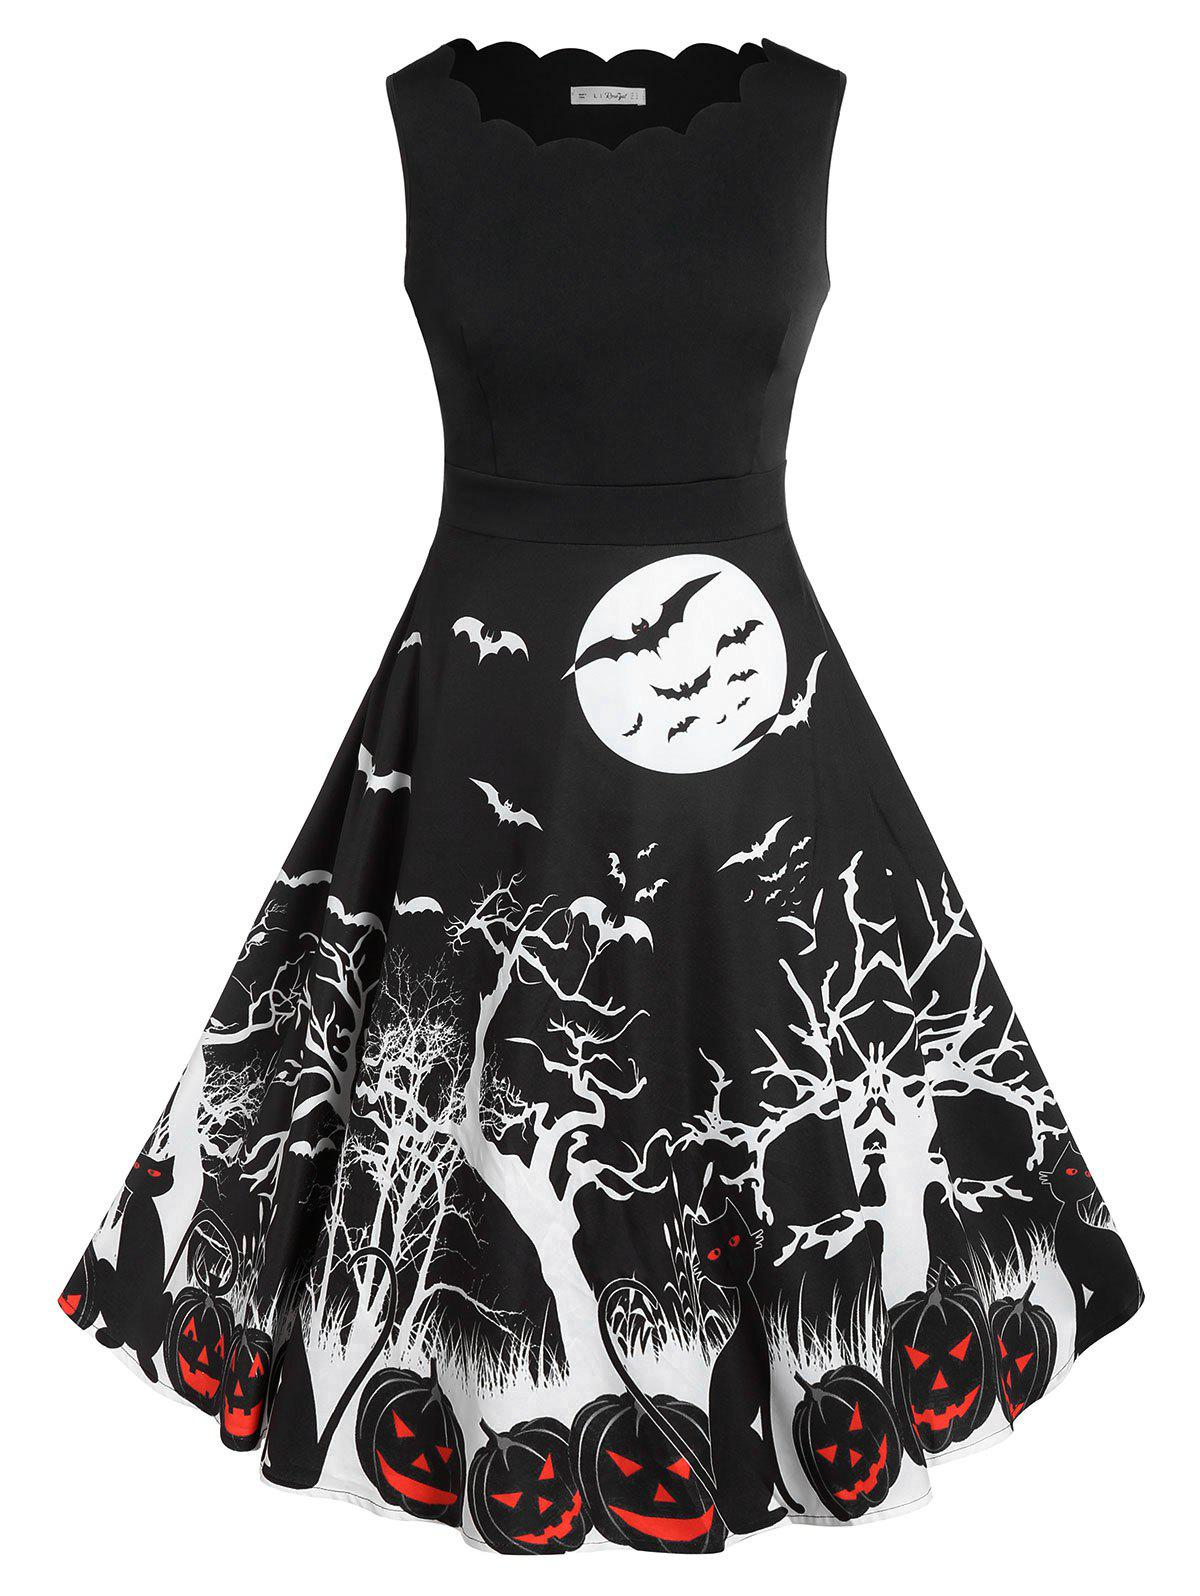 Plus Size Bat Pumpkin Print Halloween Vintage Dress - BLACK L